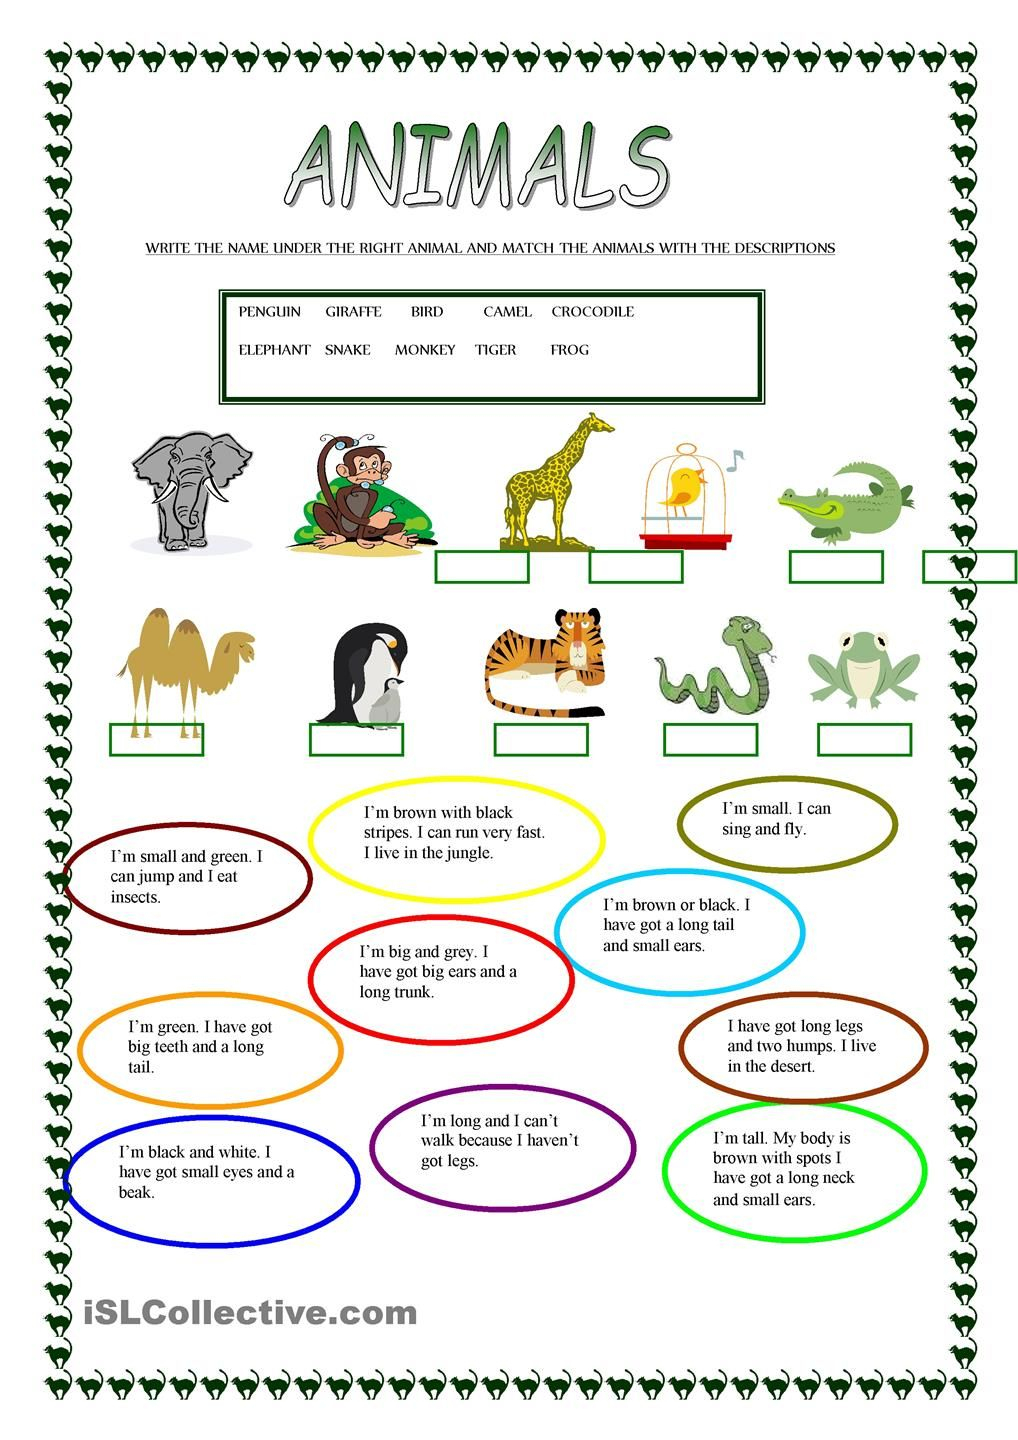 Animals | Free Esl Worksheets | Teachers Resources | Pinterest - Free Printable Esl Worksheets